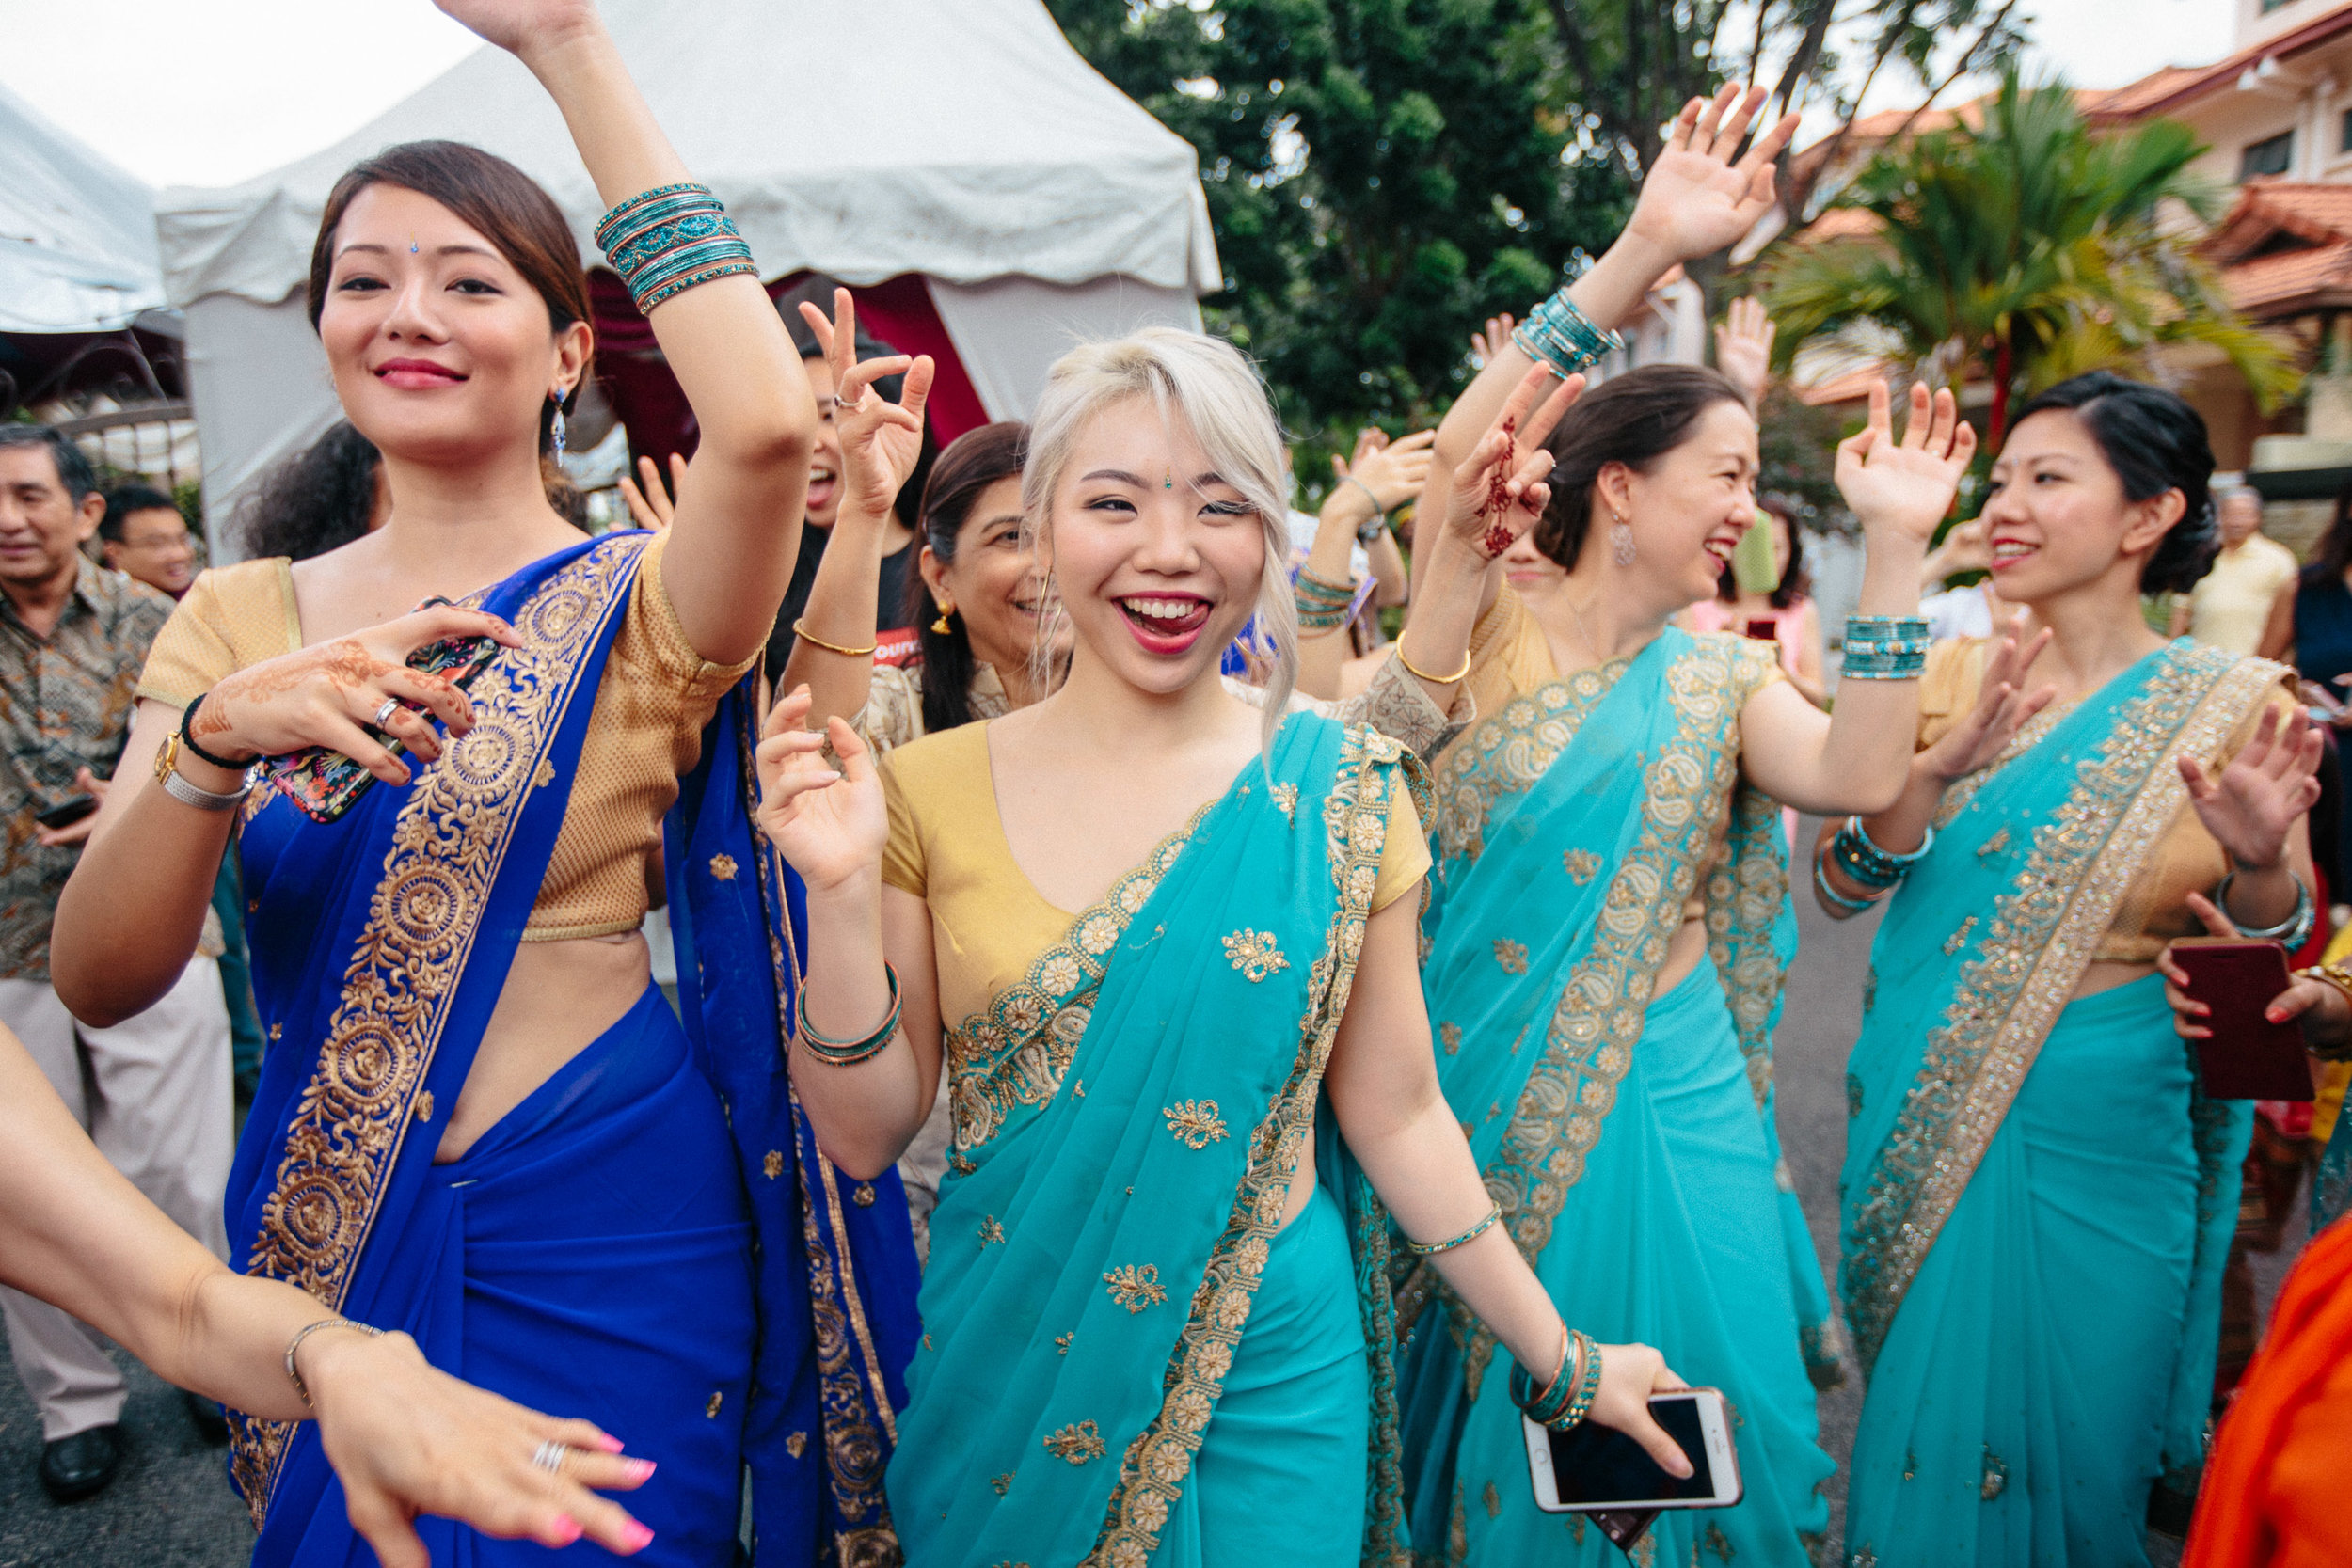 singapore-wedding-photographer-we-made-these-2016-selects-113.jpg